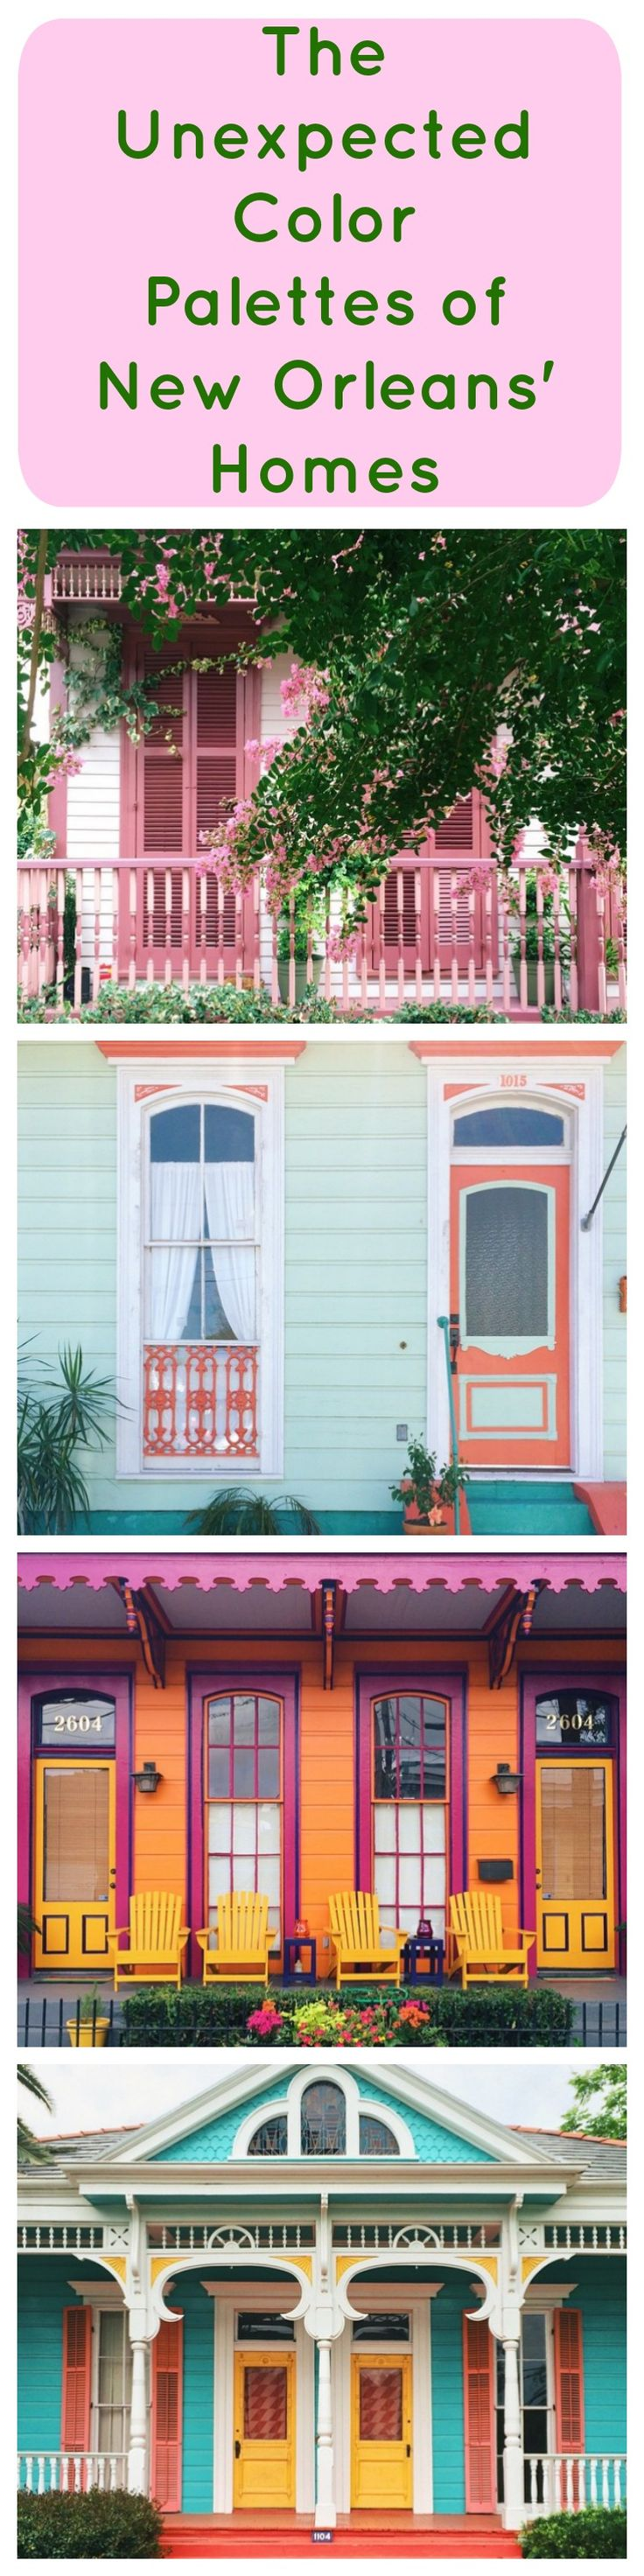 20 best new orleans paint colors images on pinterest New orleans paint colors